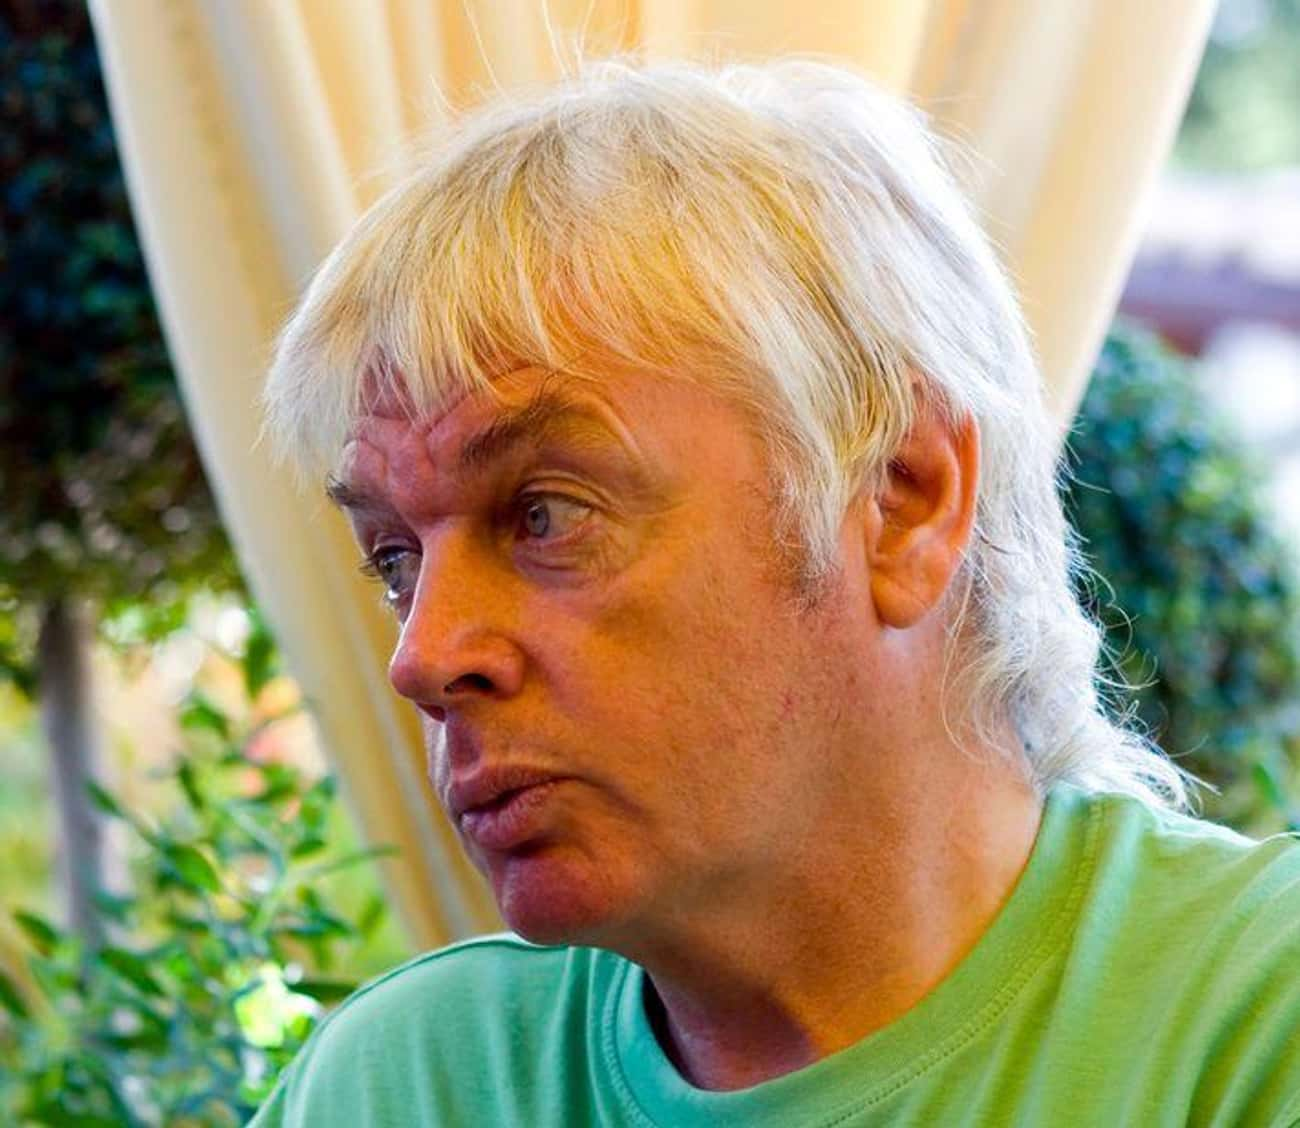 David Icke Popularized The Lizard People Theory And Believes That They Created The Human Race